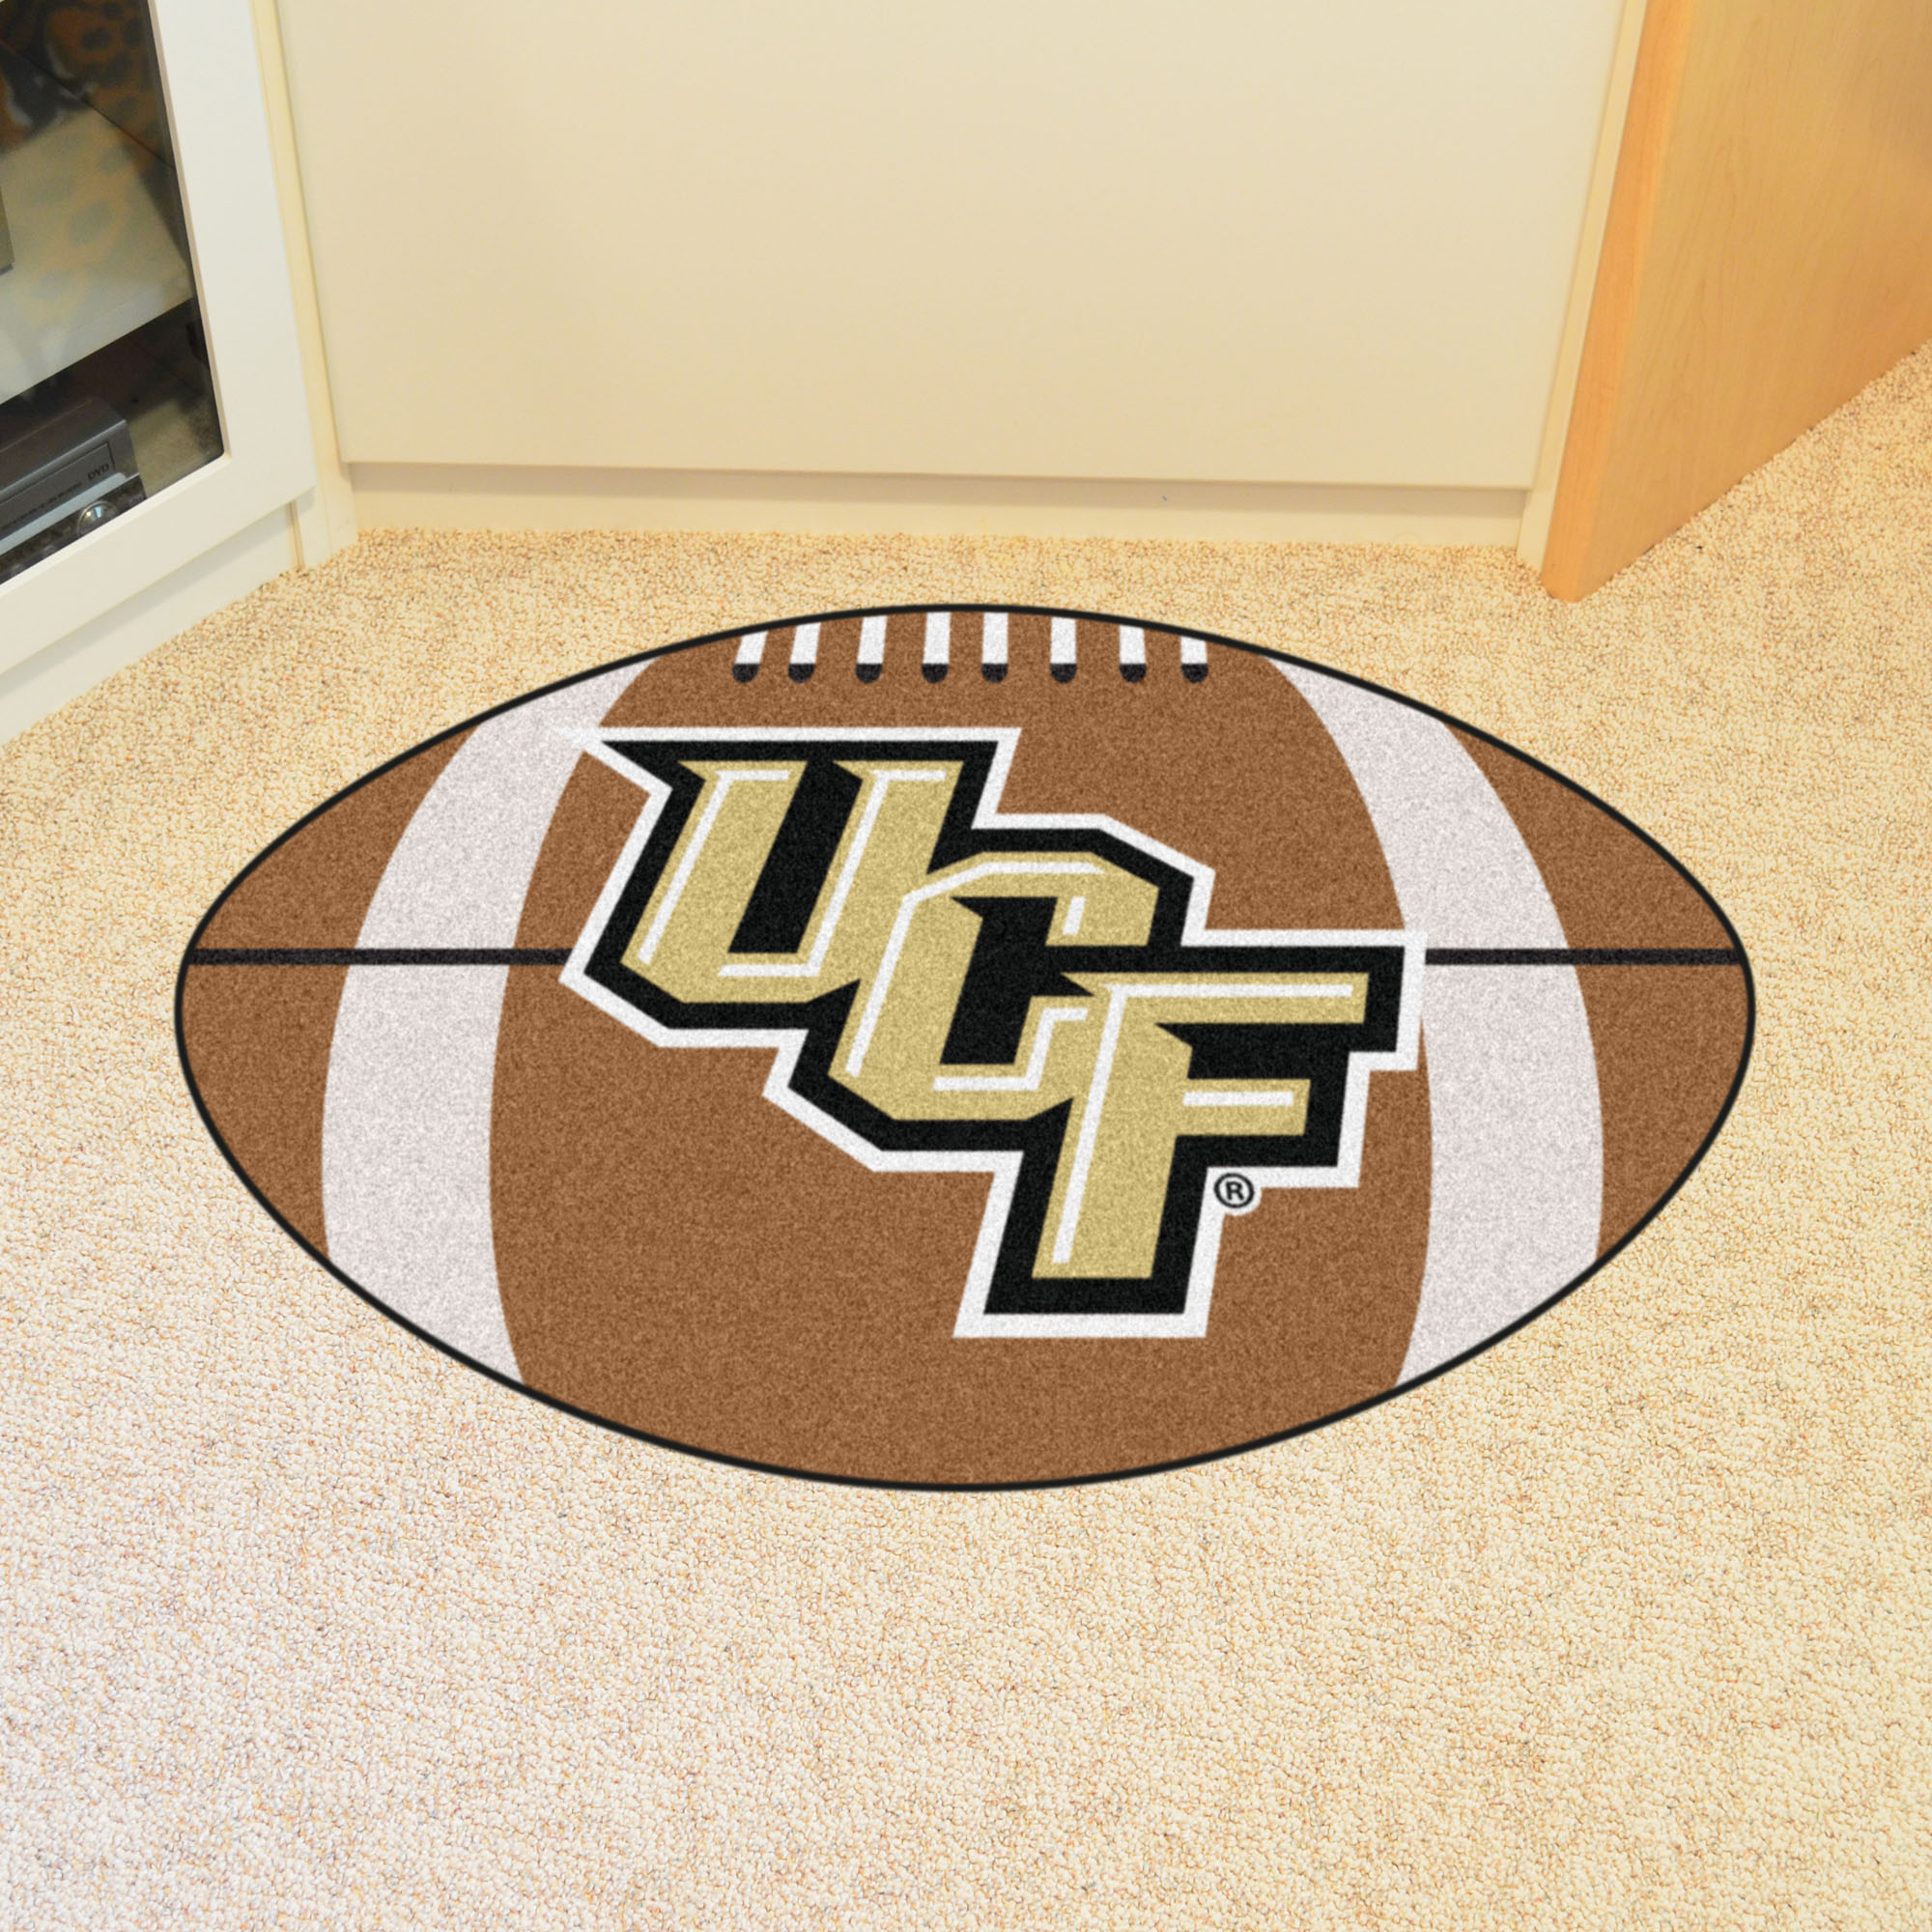 University Of Central Florida Ball Shaped Area Rugs